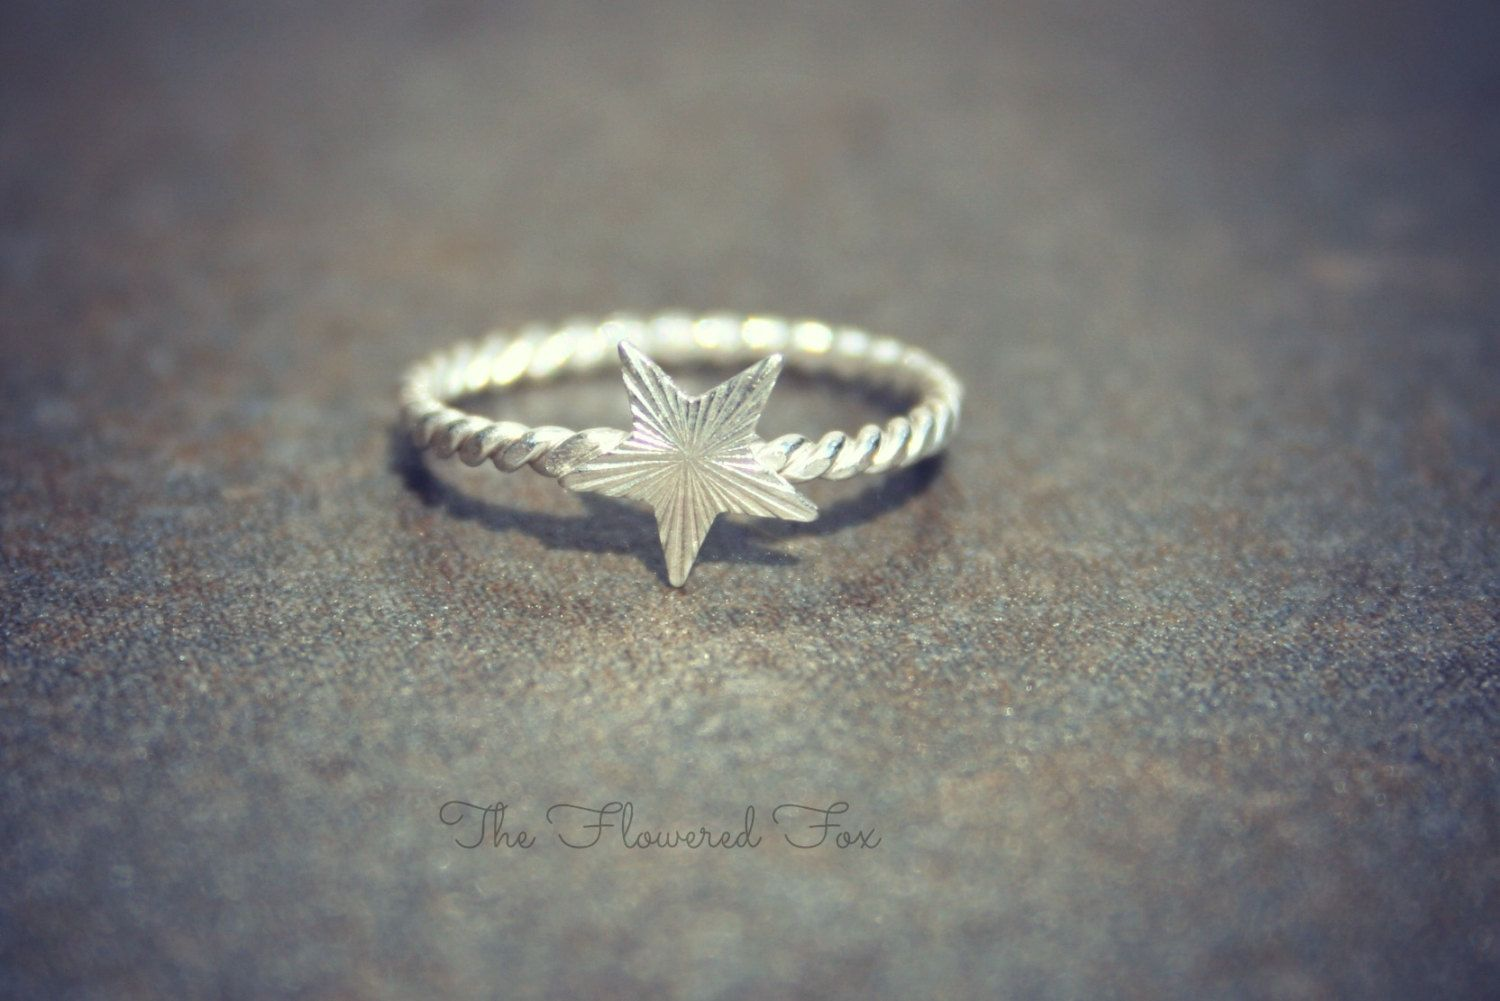 This sterling silver star midi ring is worn above the knuckle for a unique look. This ring is skinny and dainty measuring between one and two millimeters wide.  https://ravingruby.com/product/nautical-star-midi-ring/